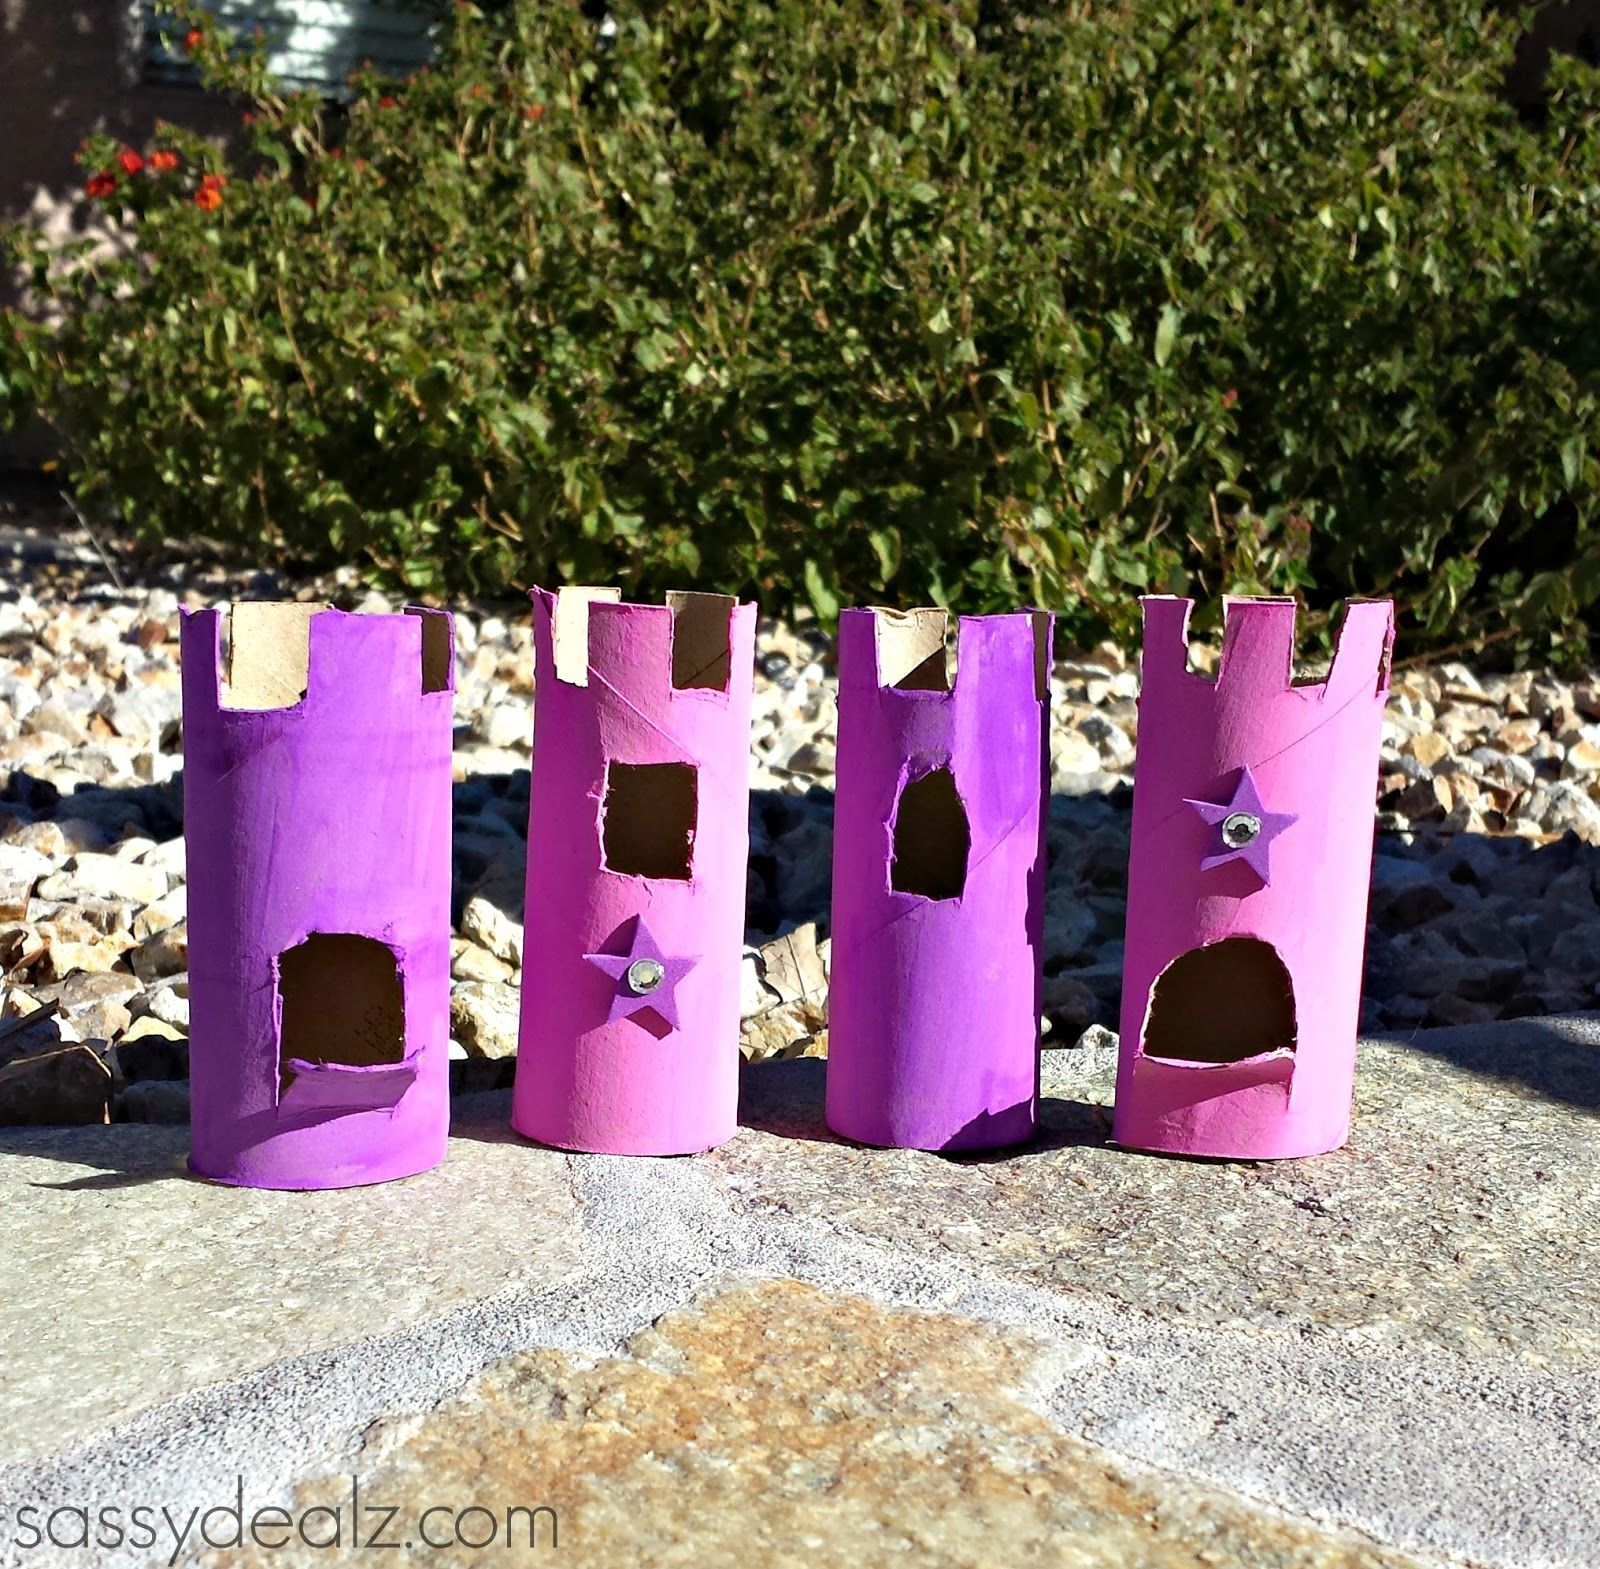 Toilet Roll Craft Ideas For Kids Part - 30: Toilet Paper Roll Castles {Craft Idea For Kids